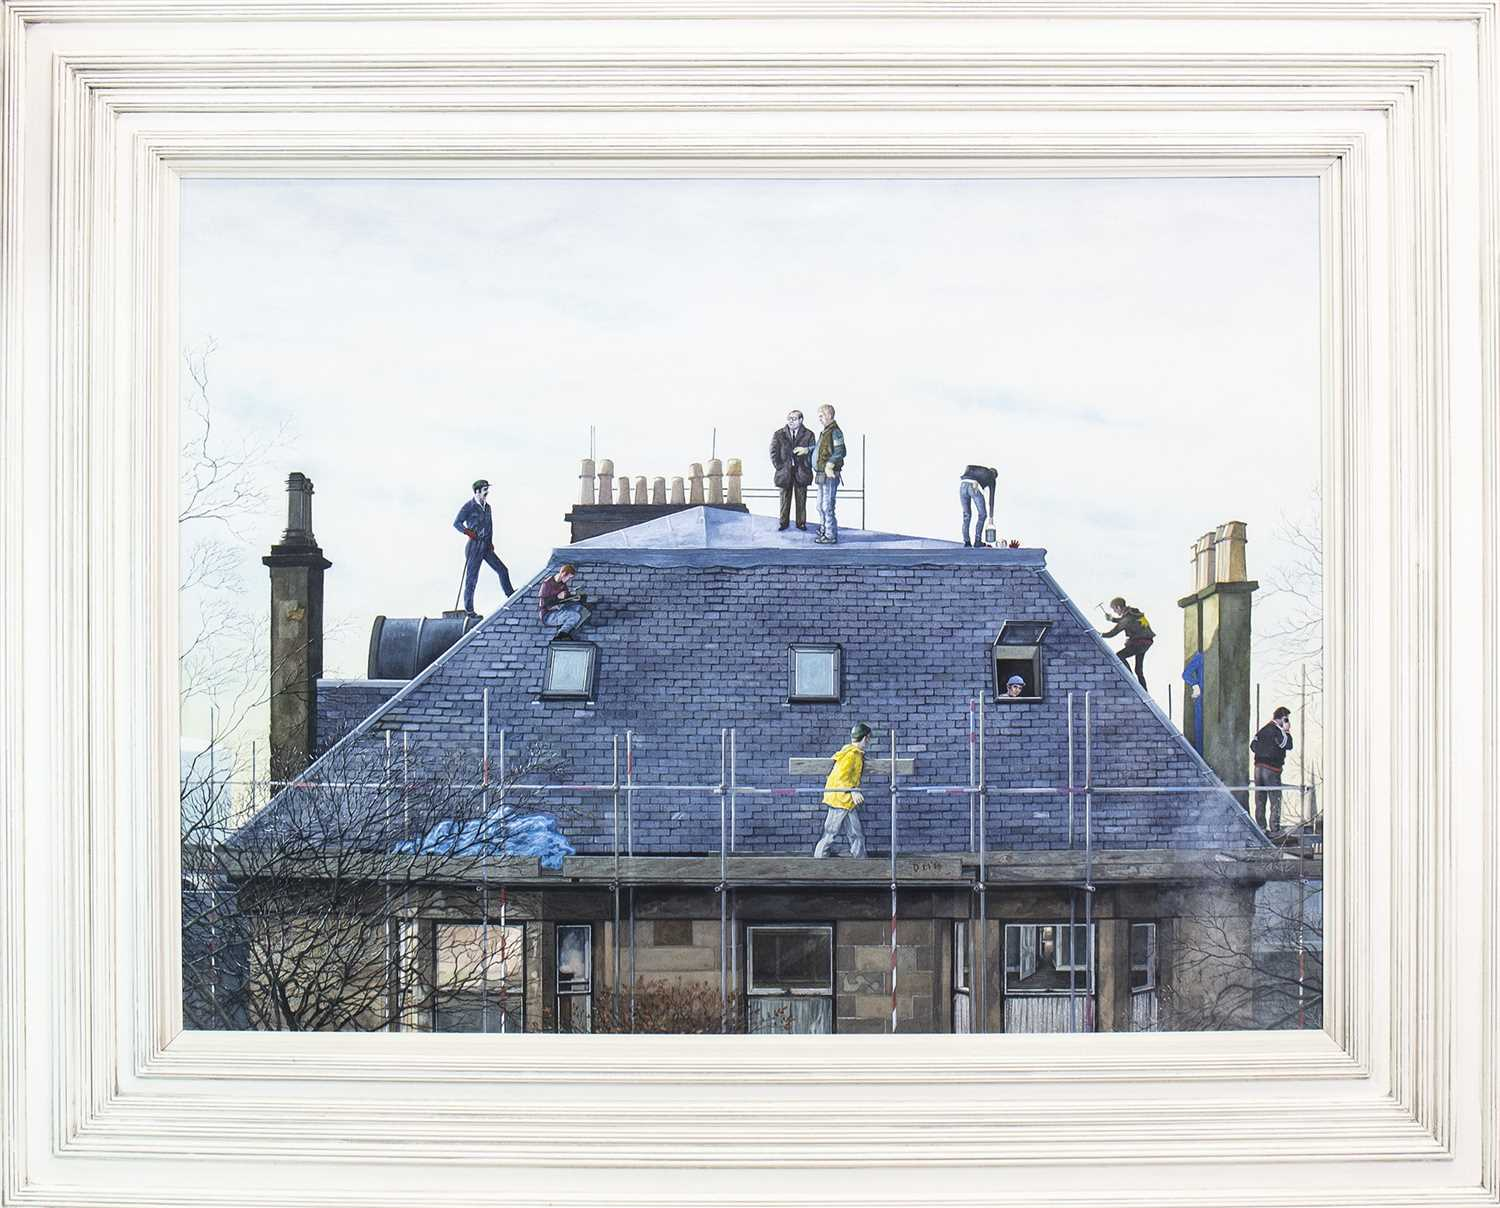 Lot 591 - TOPPING OUT DAY, A WATERCOLOUR BY AVRIL PATON